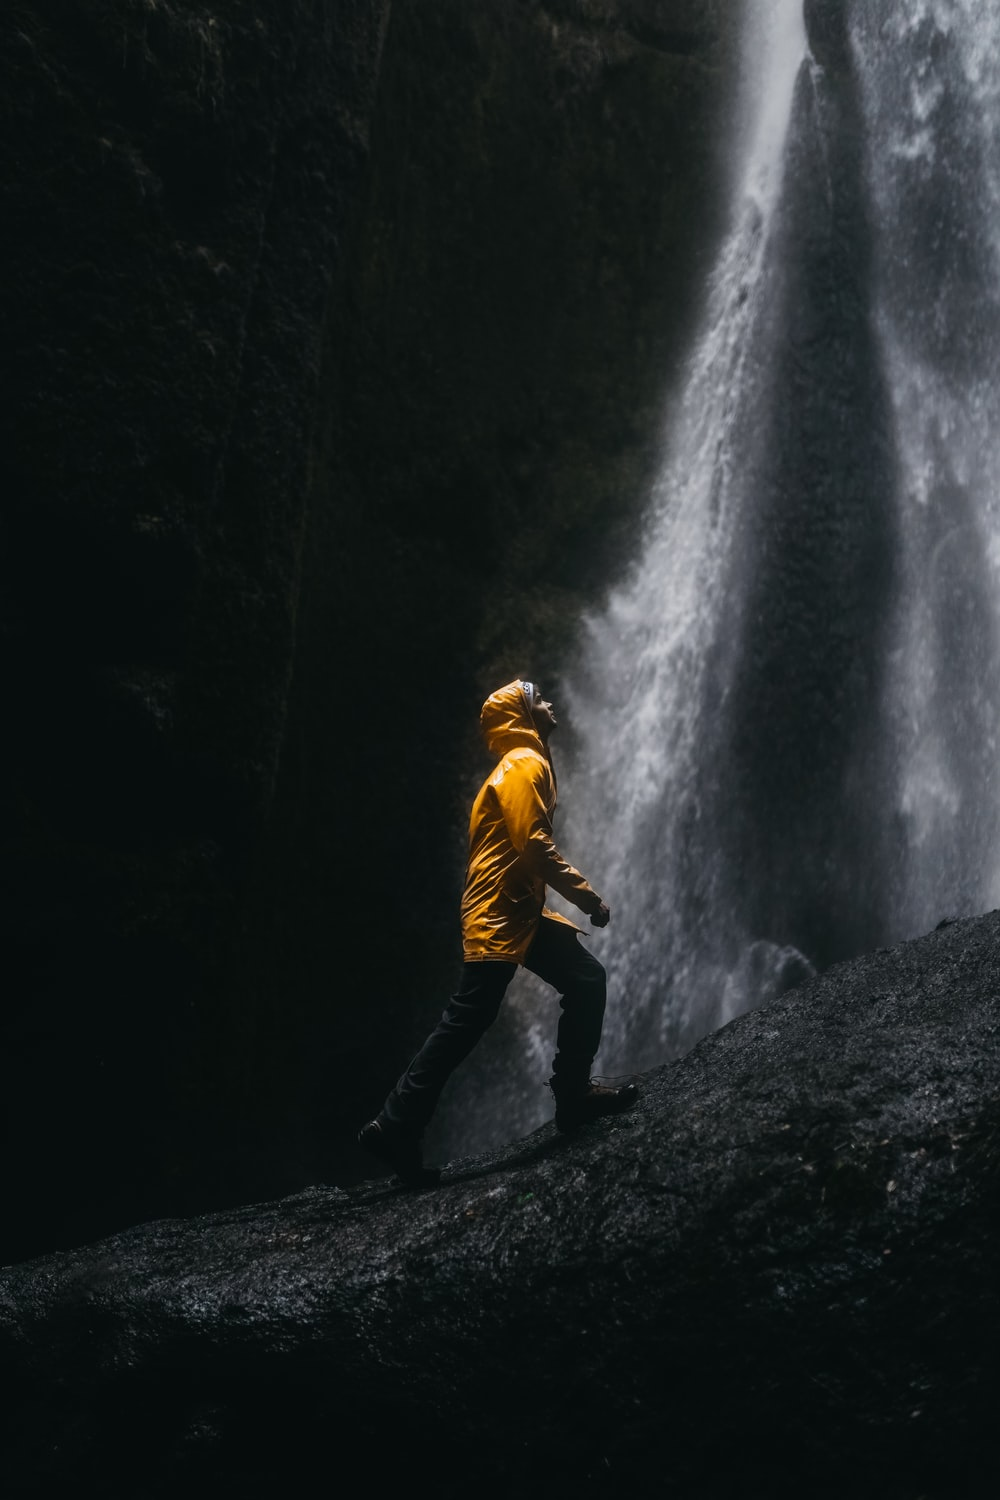 woman in yellow jacket and black pants standing on rock in front of waterfalls